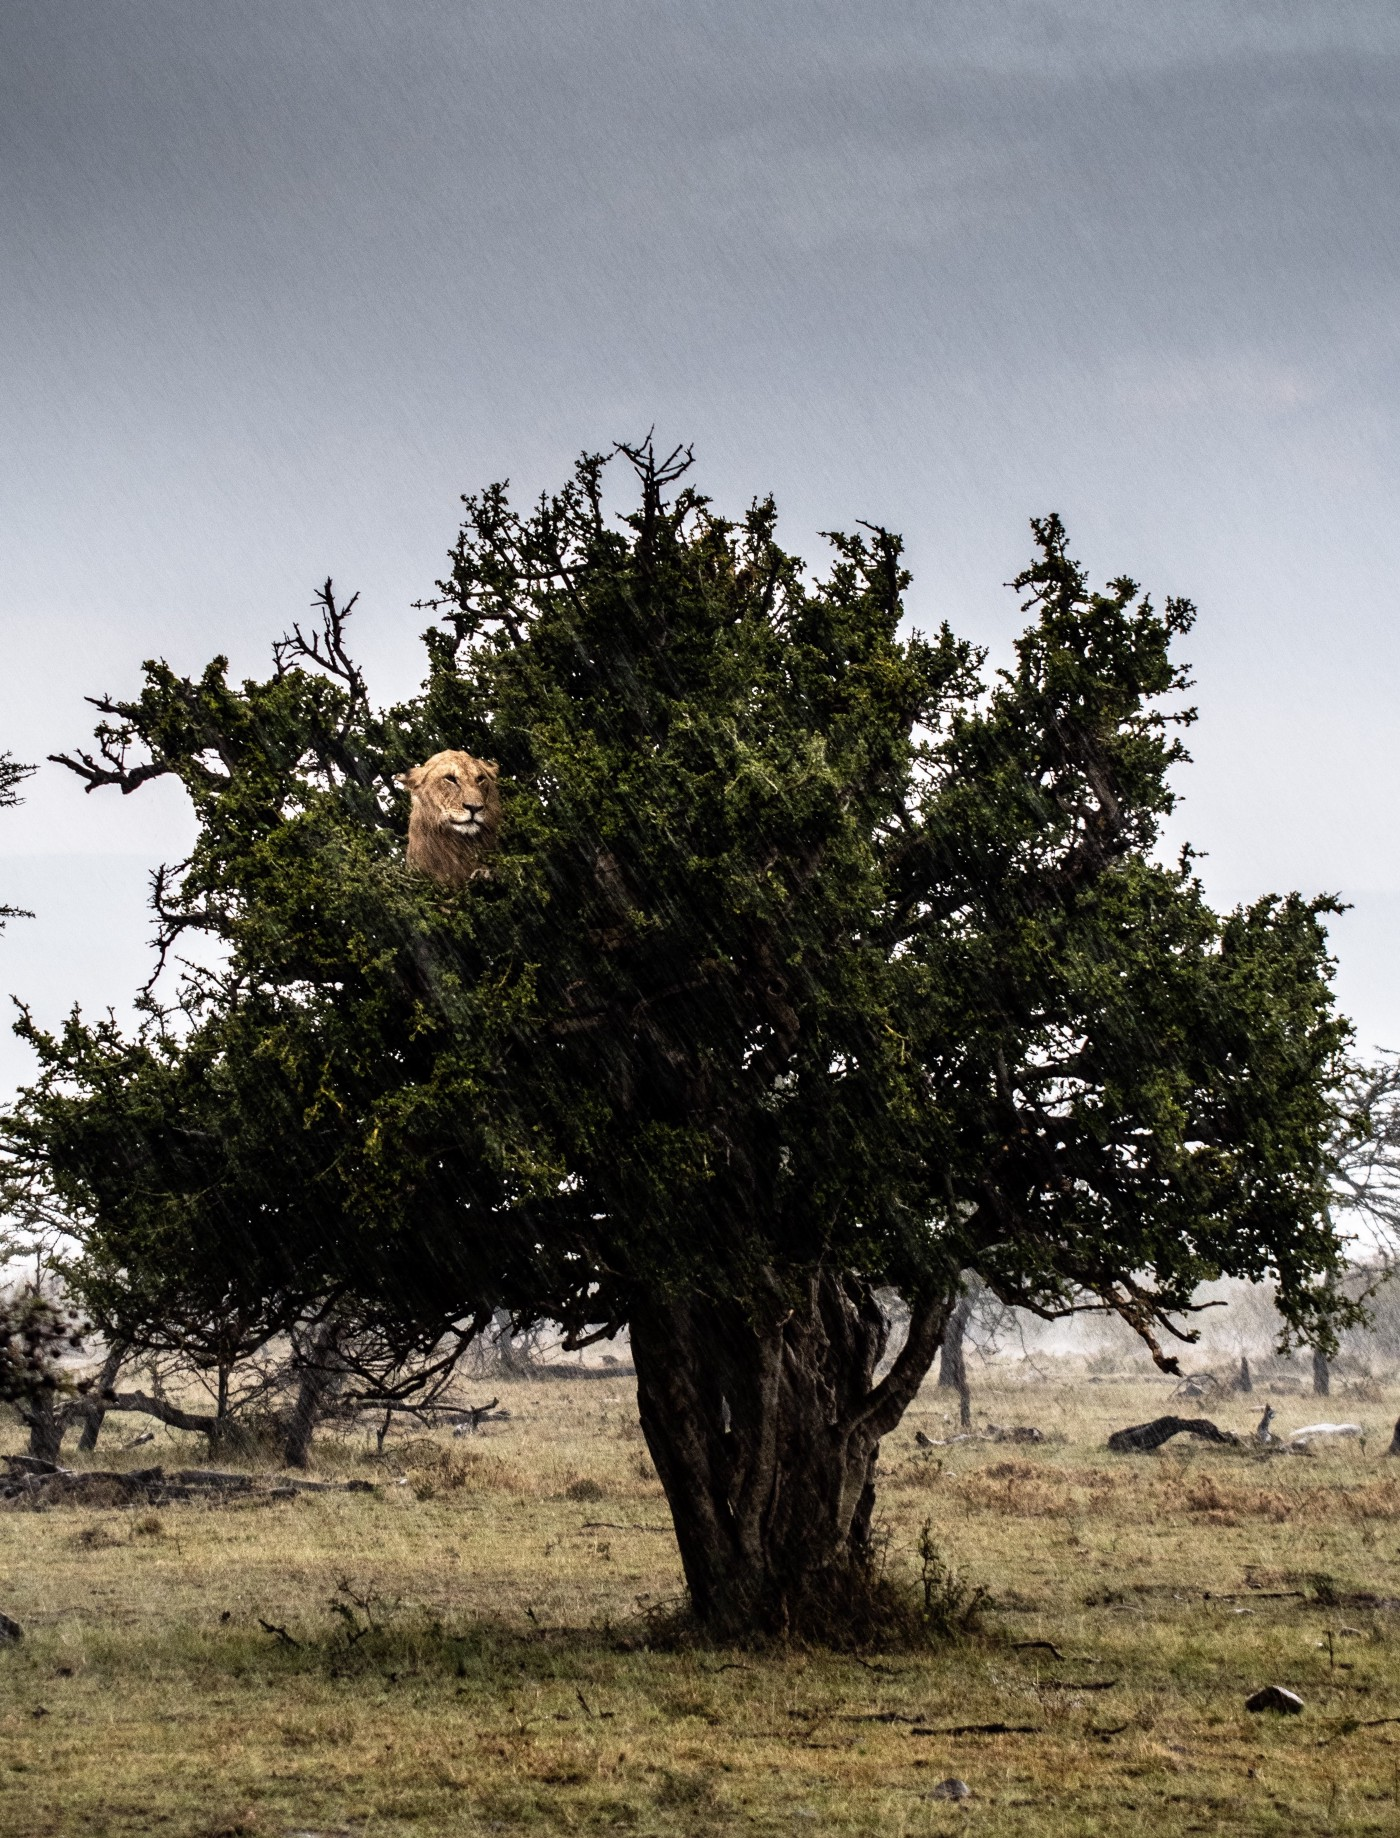 There is a big tree with a lioness on it, she is looking out from a gap in the benches, waiting for the right time to go down